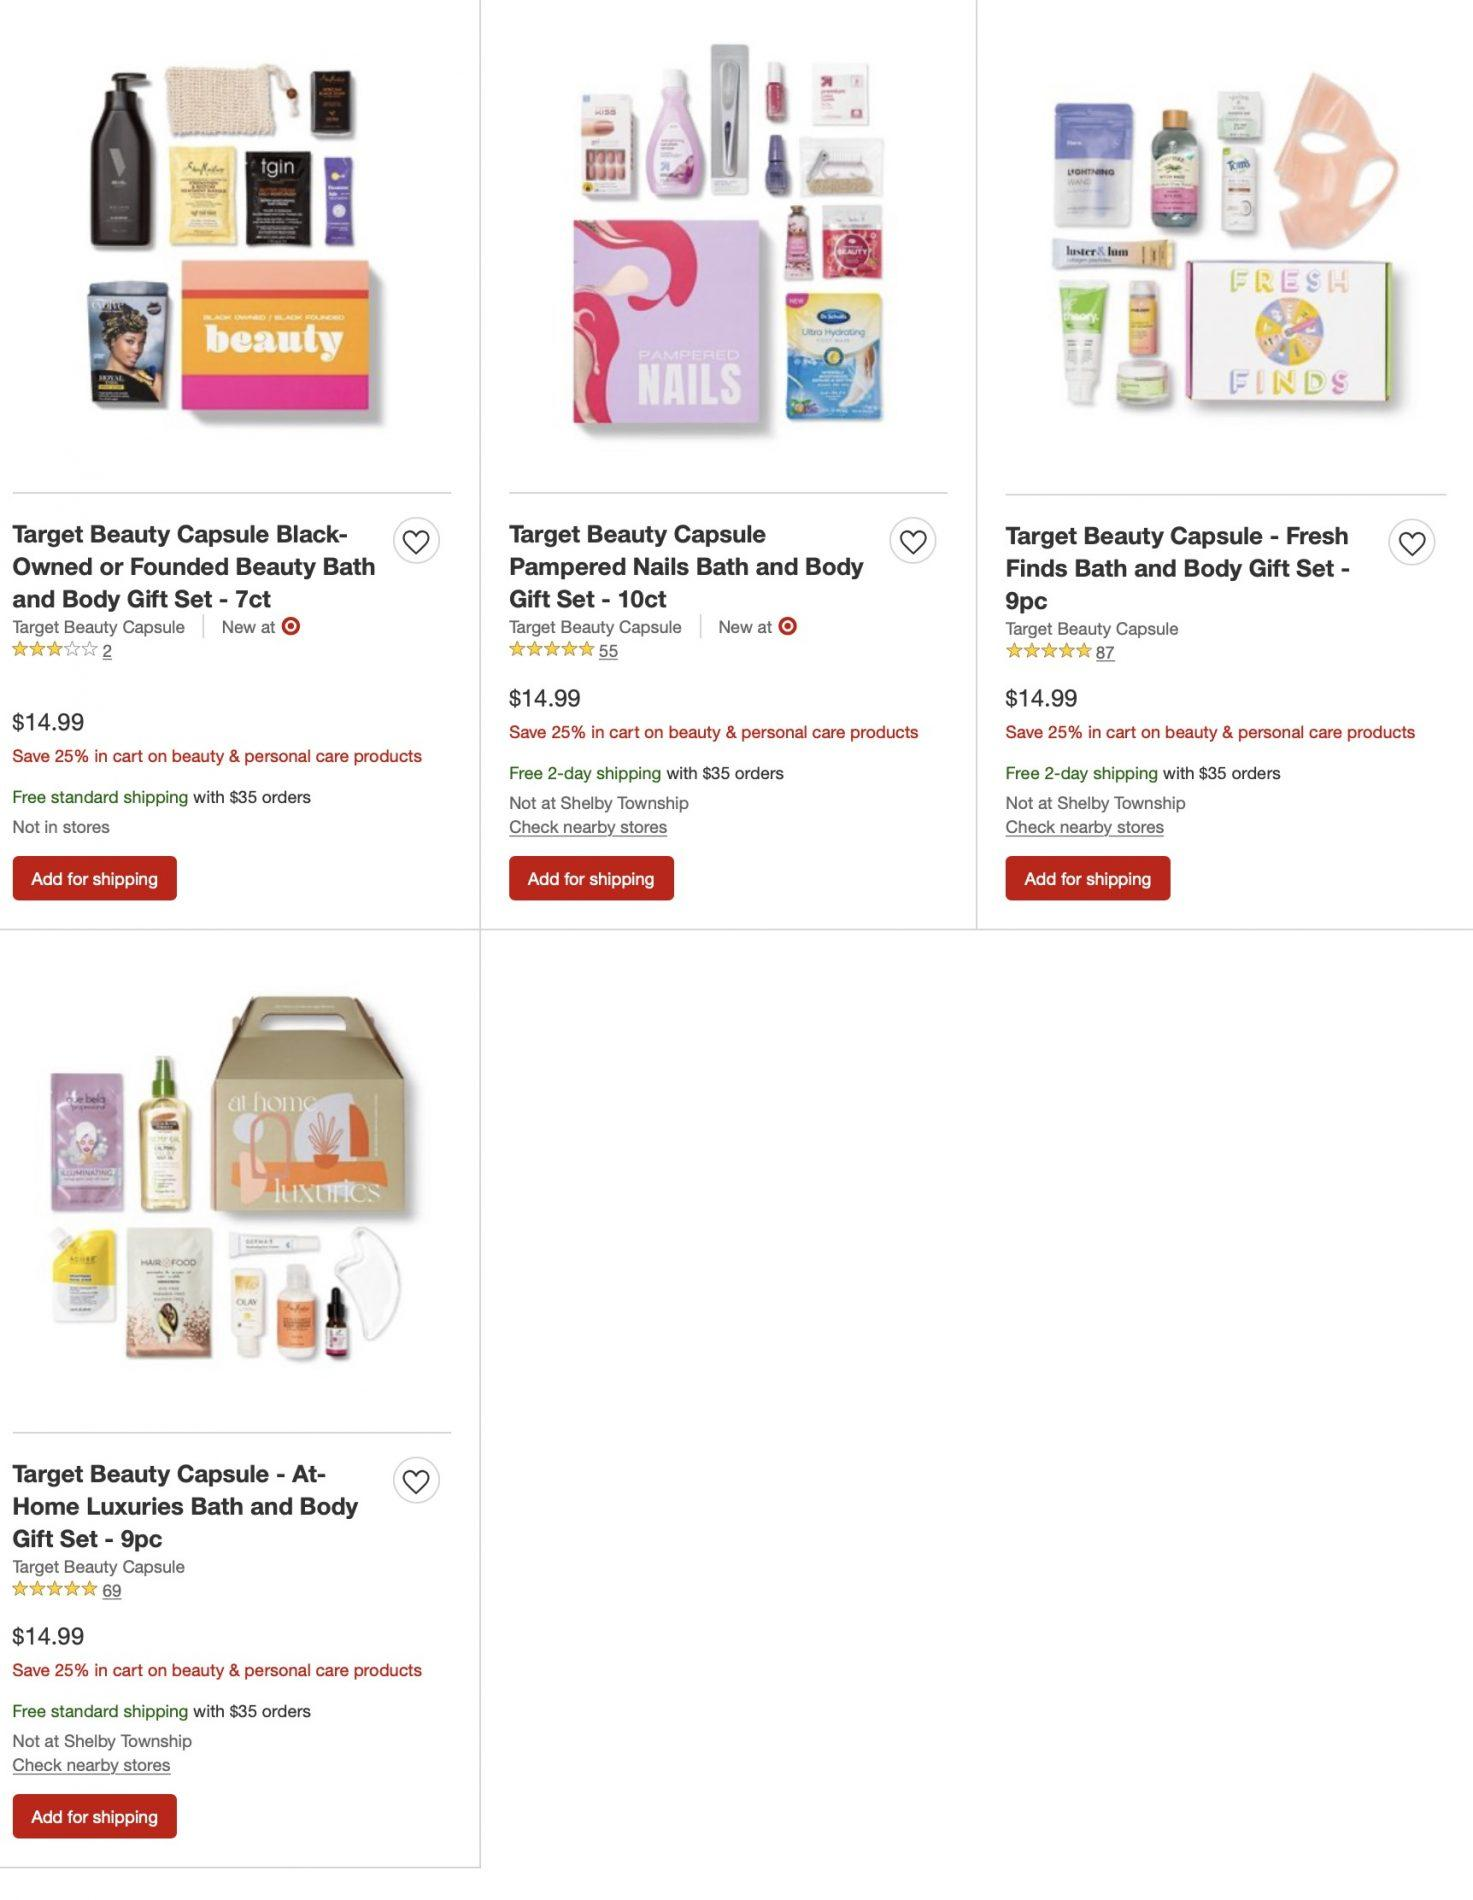 Target Beauty Box Sets – Now 25% Off!